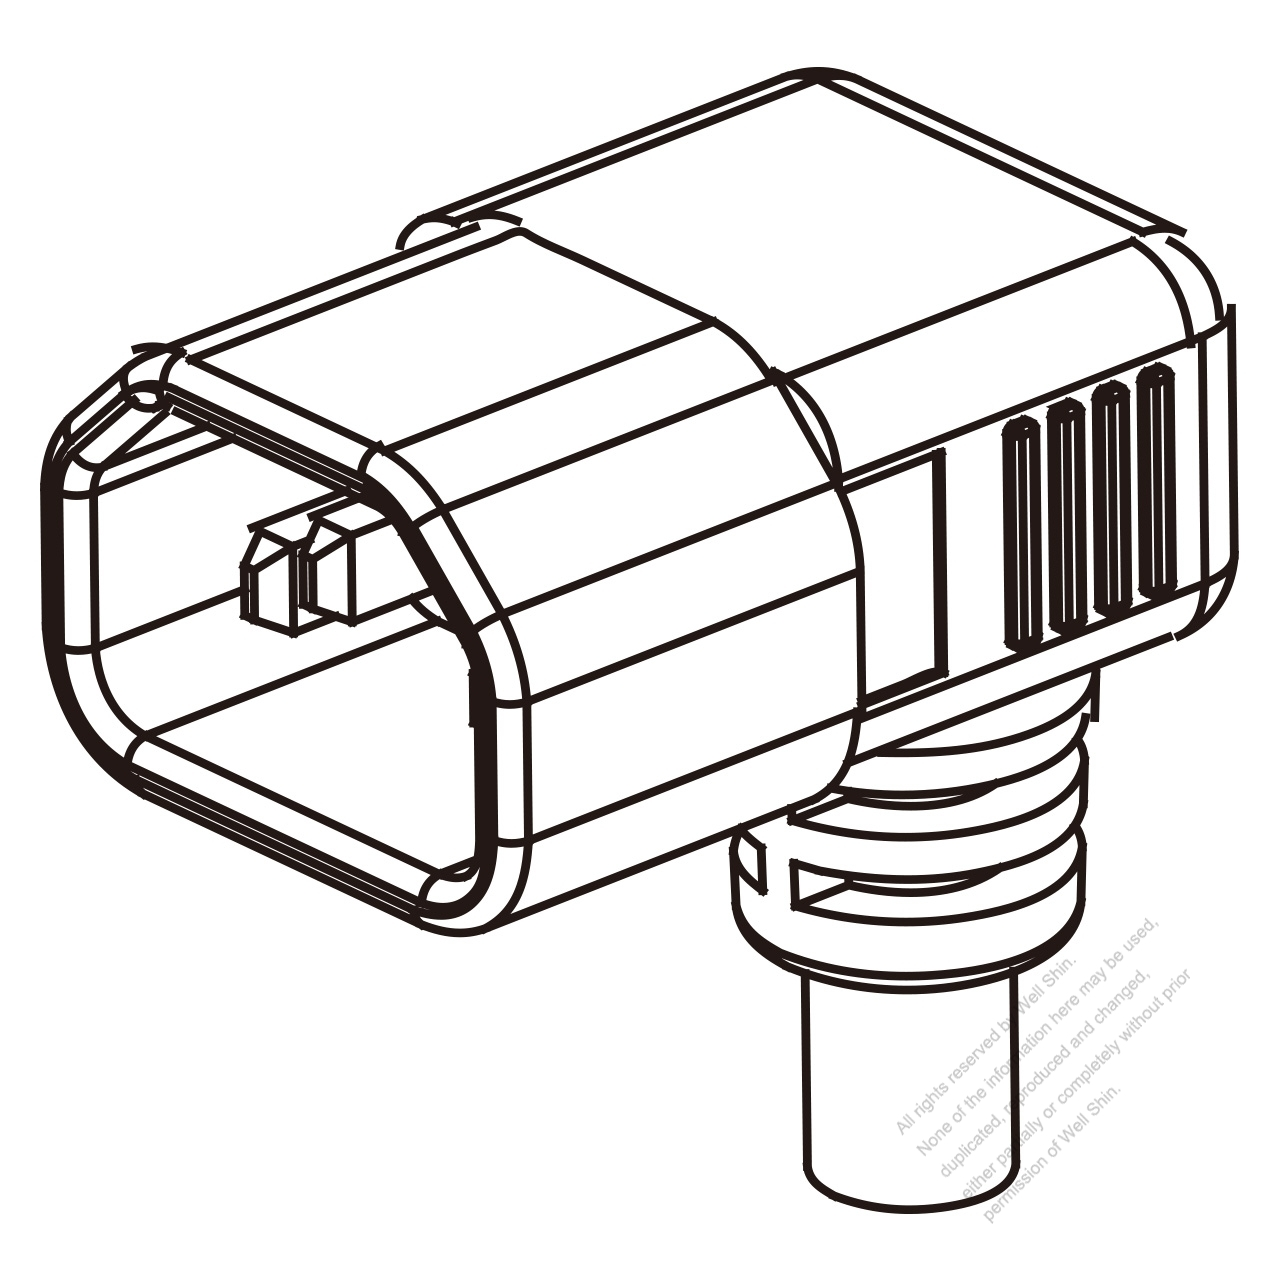 Europe Iec 320 Sheet E C14 Plug Connectors 3 Pin Angle